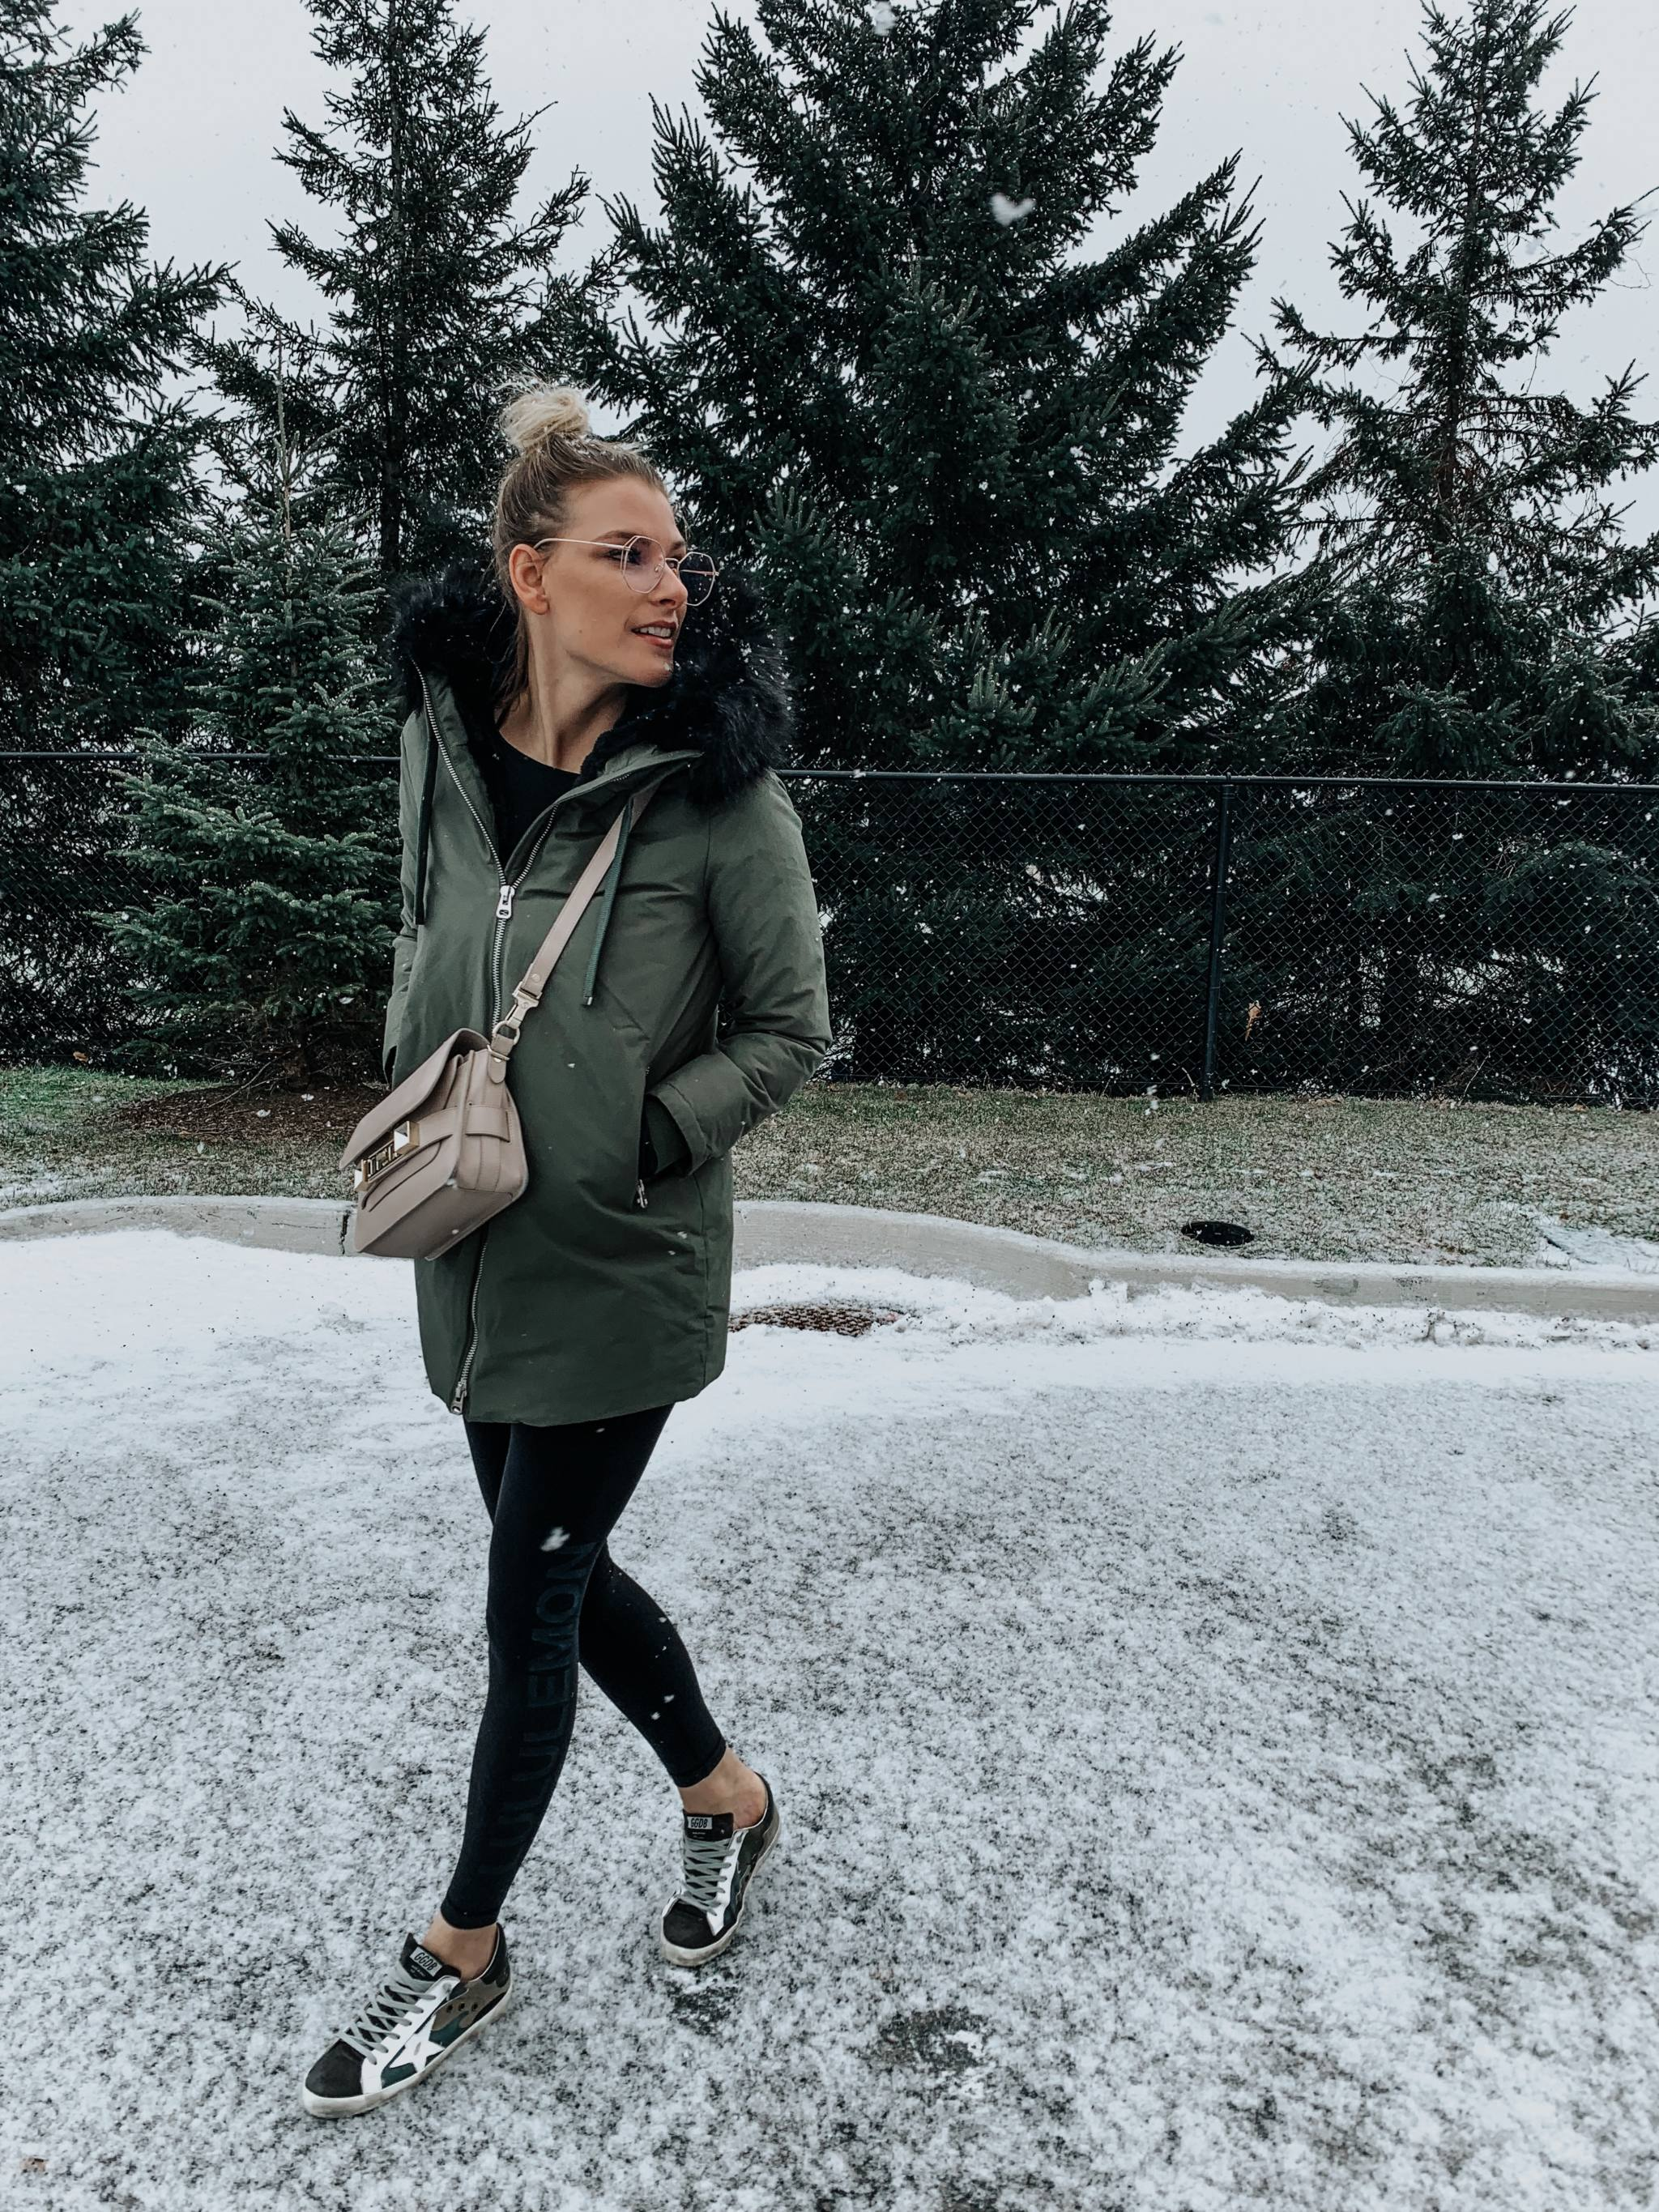 ottawa fashion blogger wearing golden goose shoes